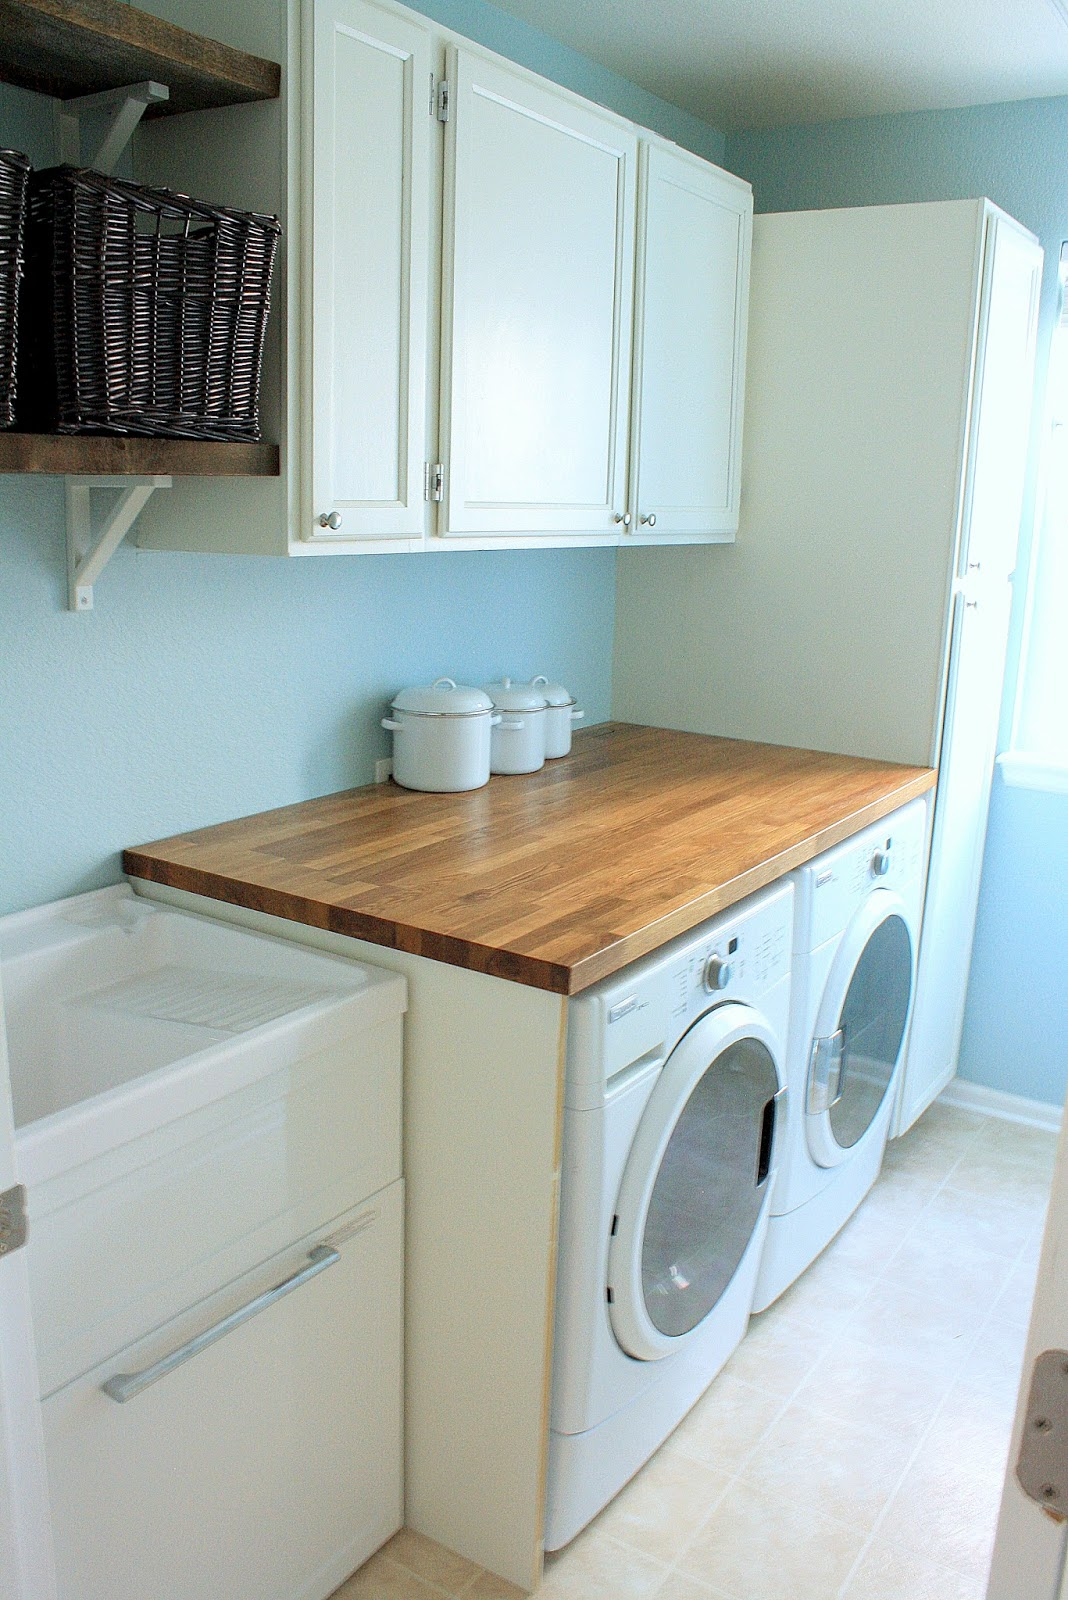 Countertop Options For Laundry Room : Laundry Room Reveal (finally!)